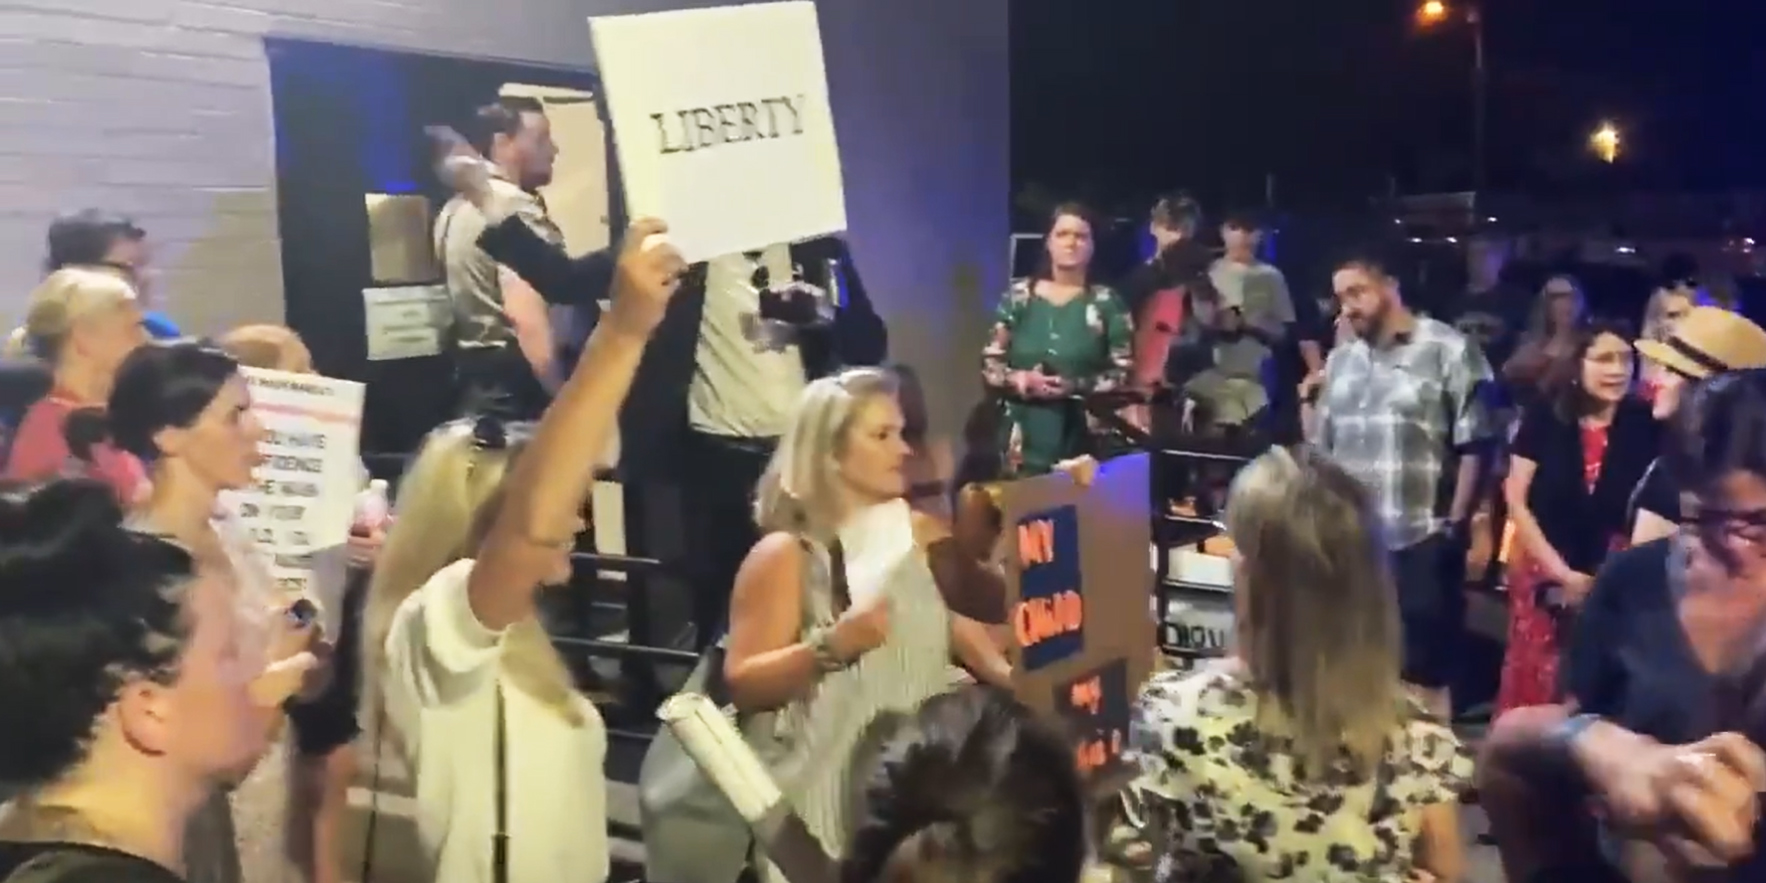 'We will find you': Tennessee parents protest school mask mandate; people in masks heckled